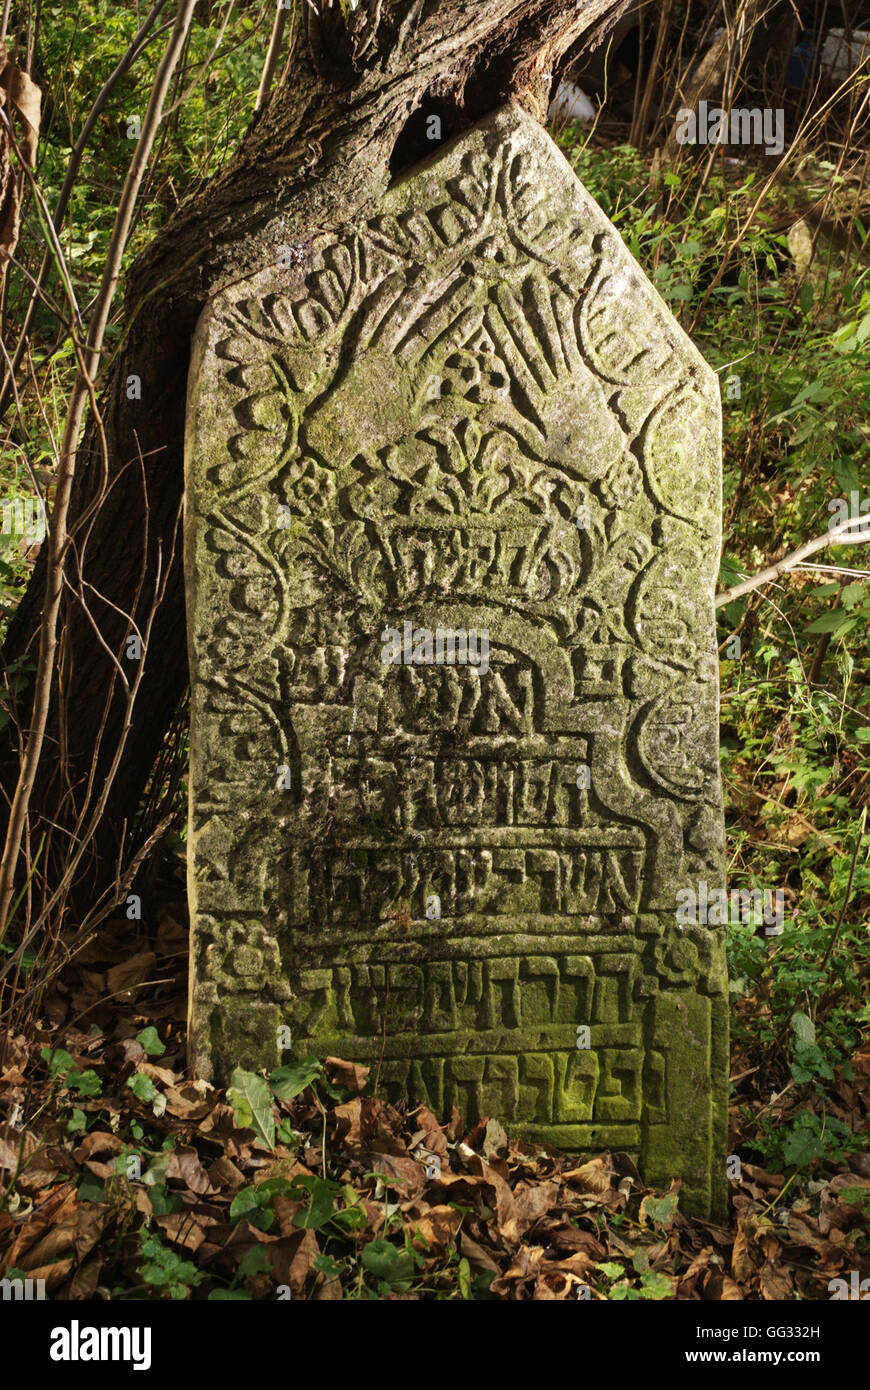 5516.Suceva, Romania. Decorated tombstone from the ancient graveyard, dating 18-19th C. - Stock Image